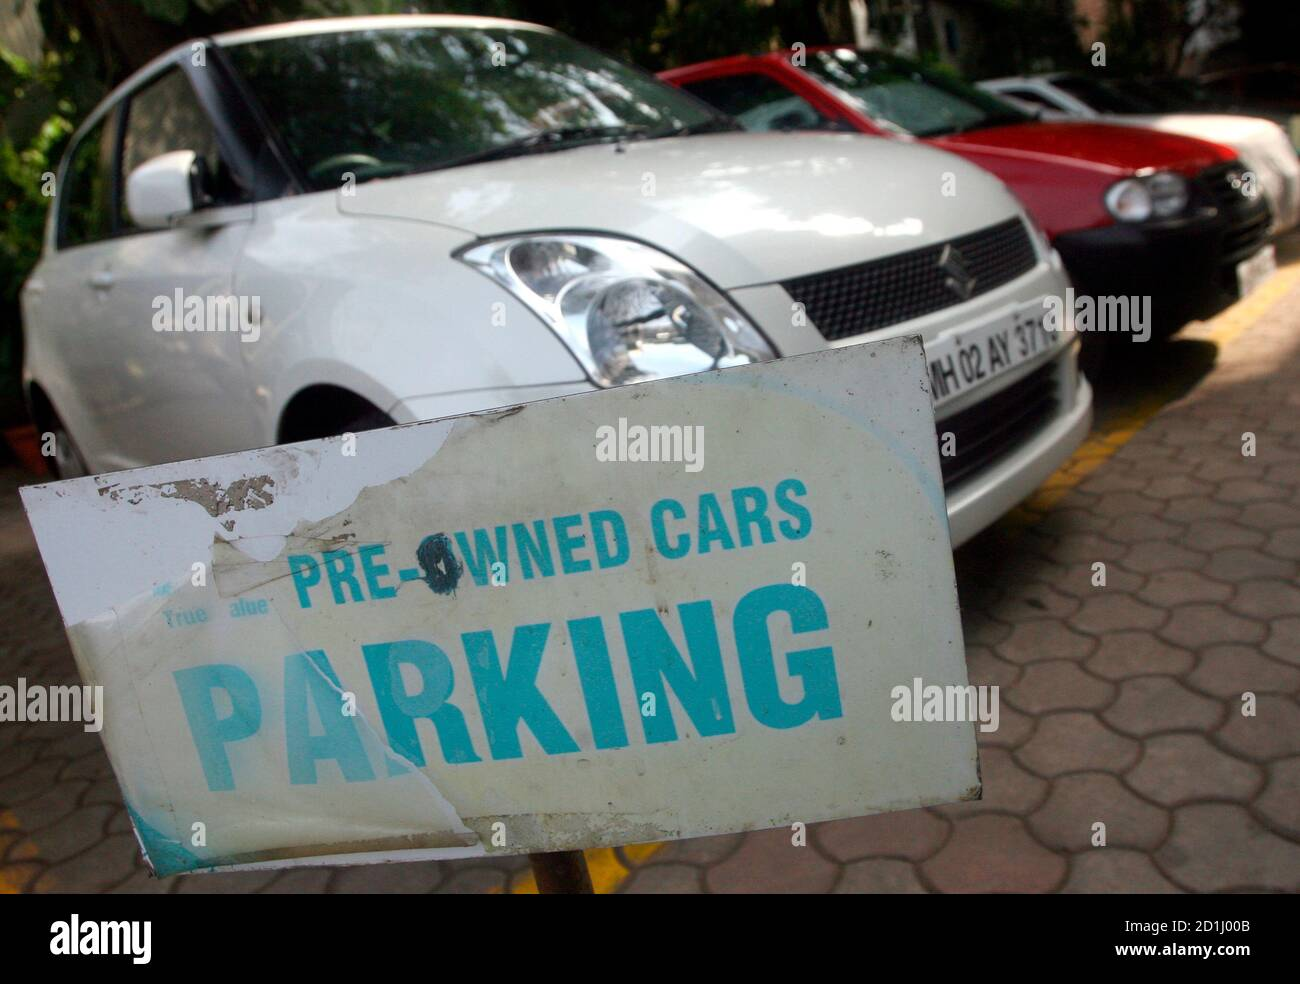 Auto Trade Used Cars High Resolution Stock Photography And Images Alamy